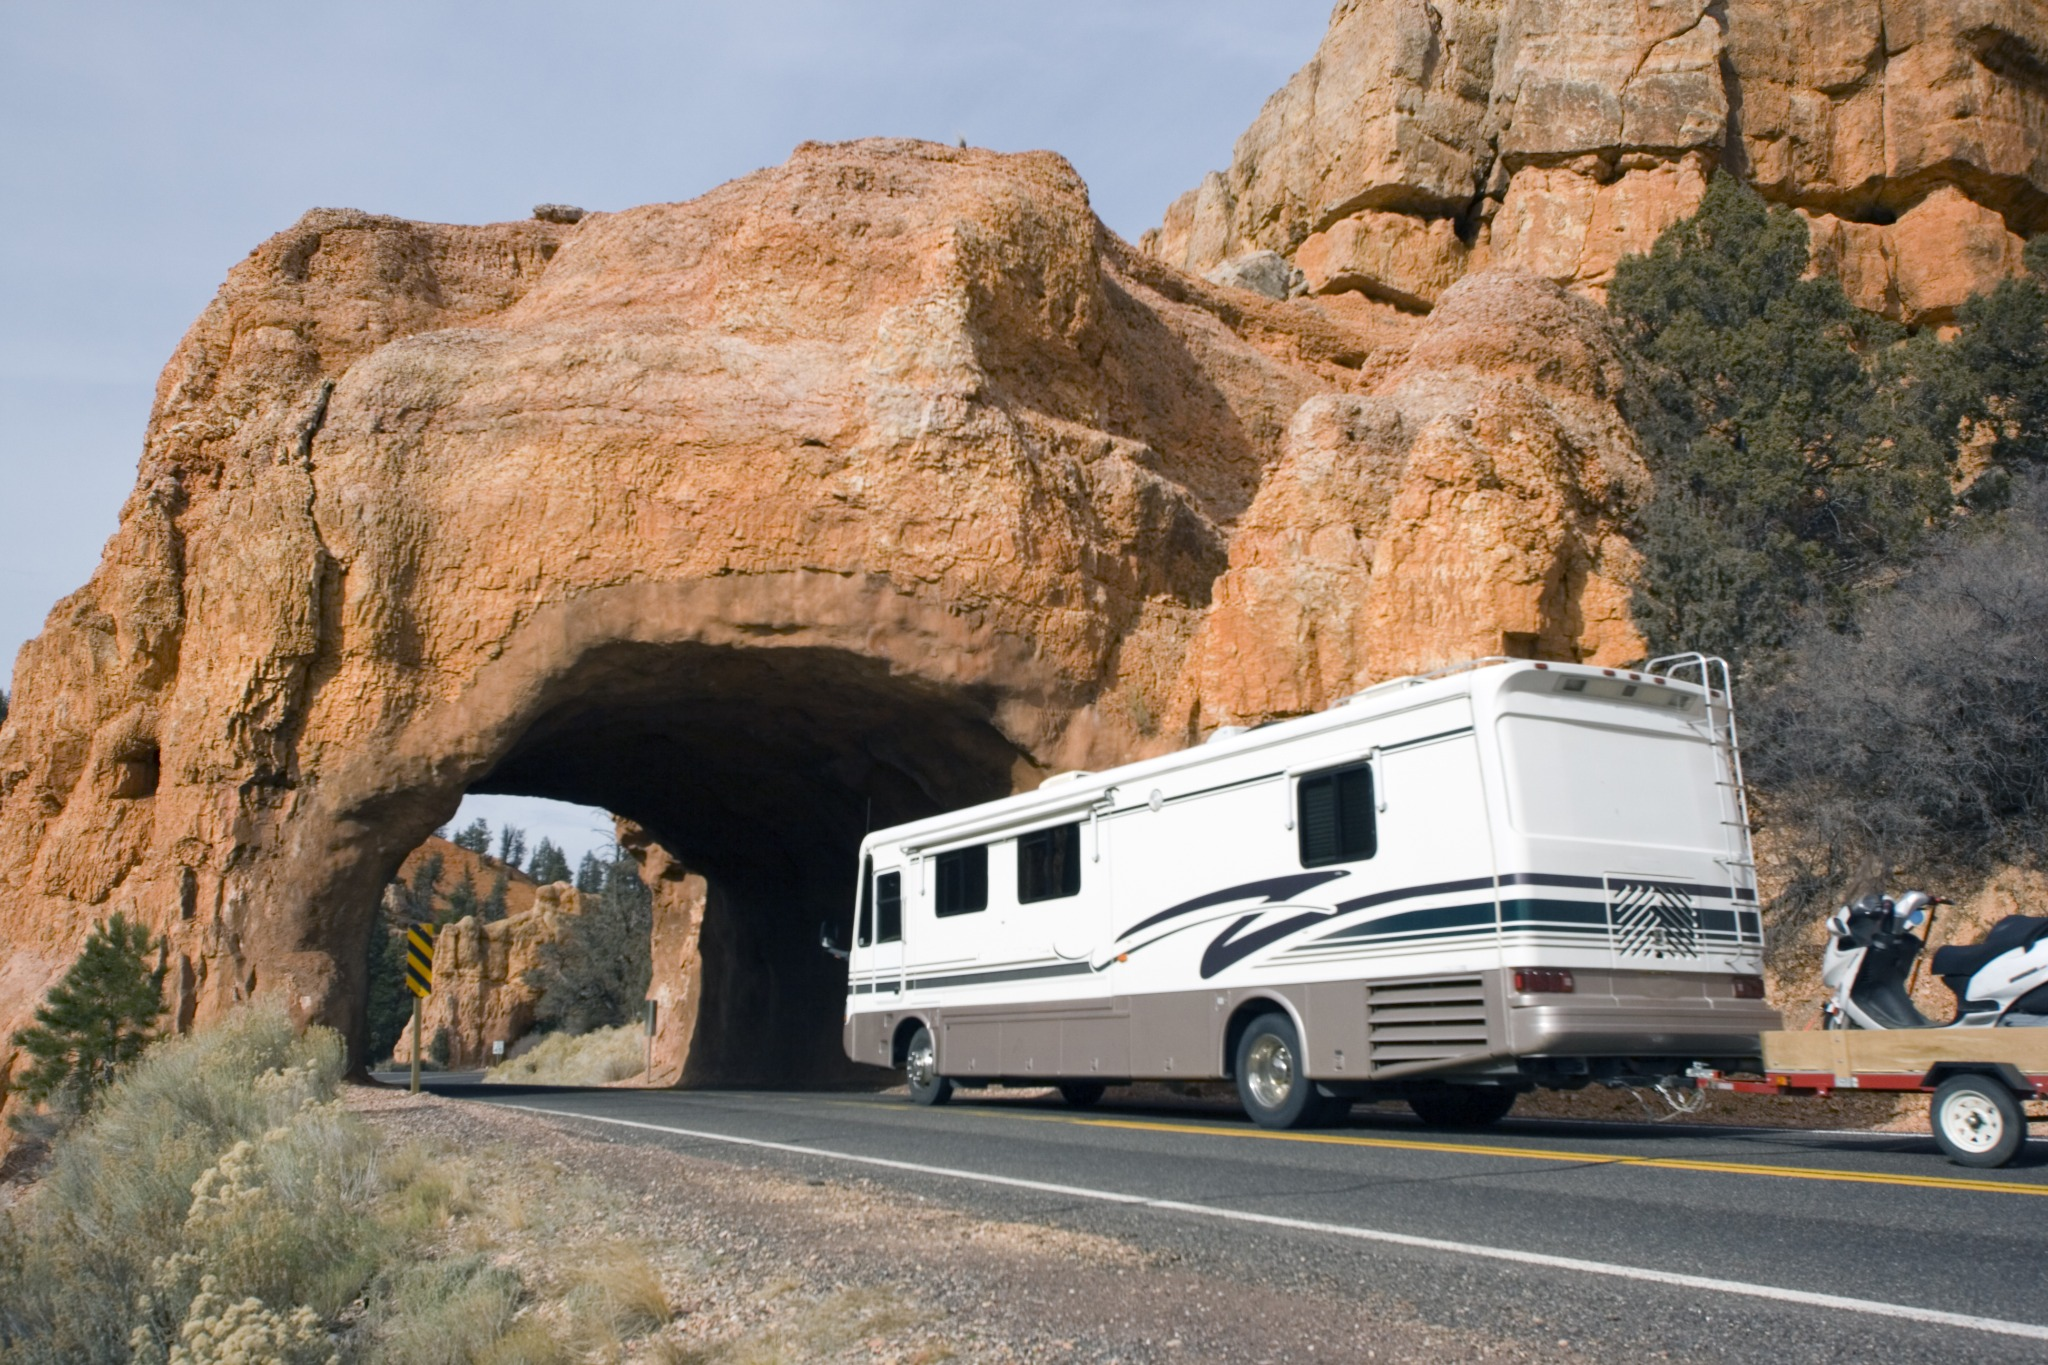 A motorhome driving through a rock formation going over a road.